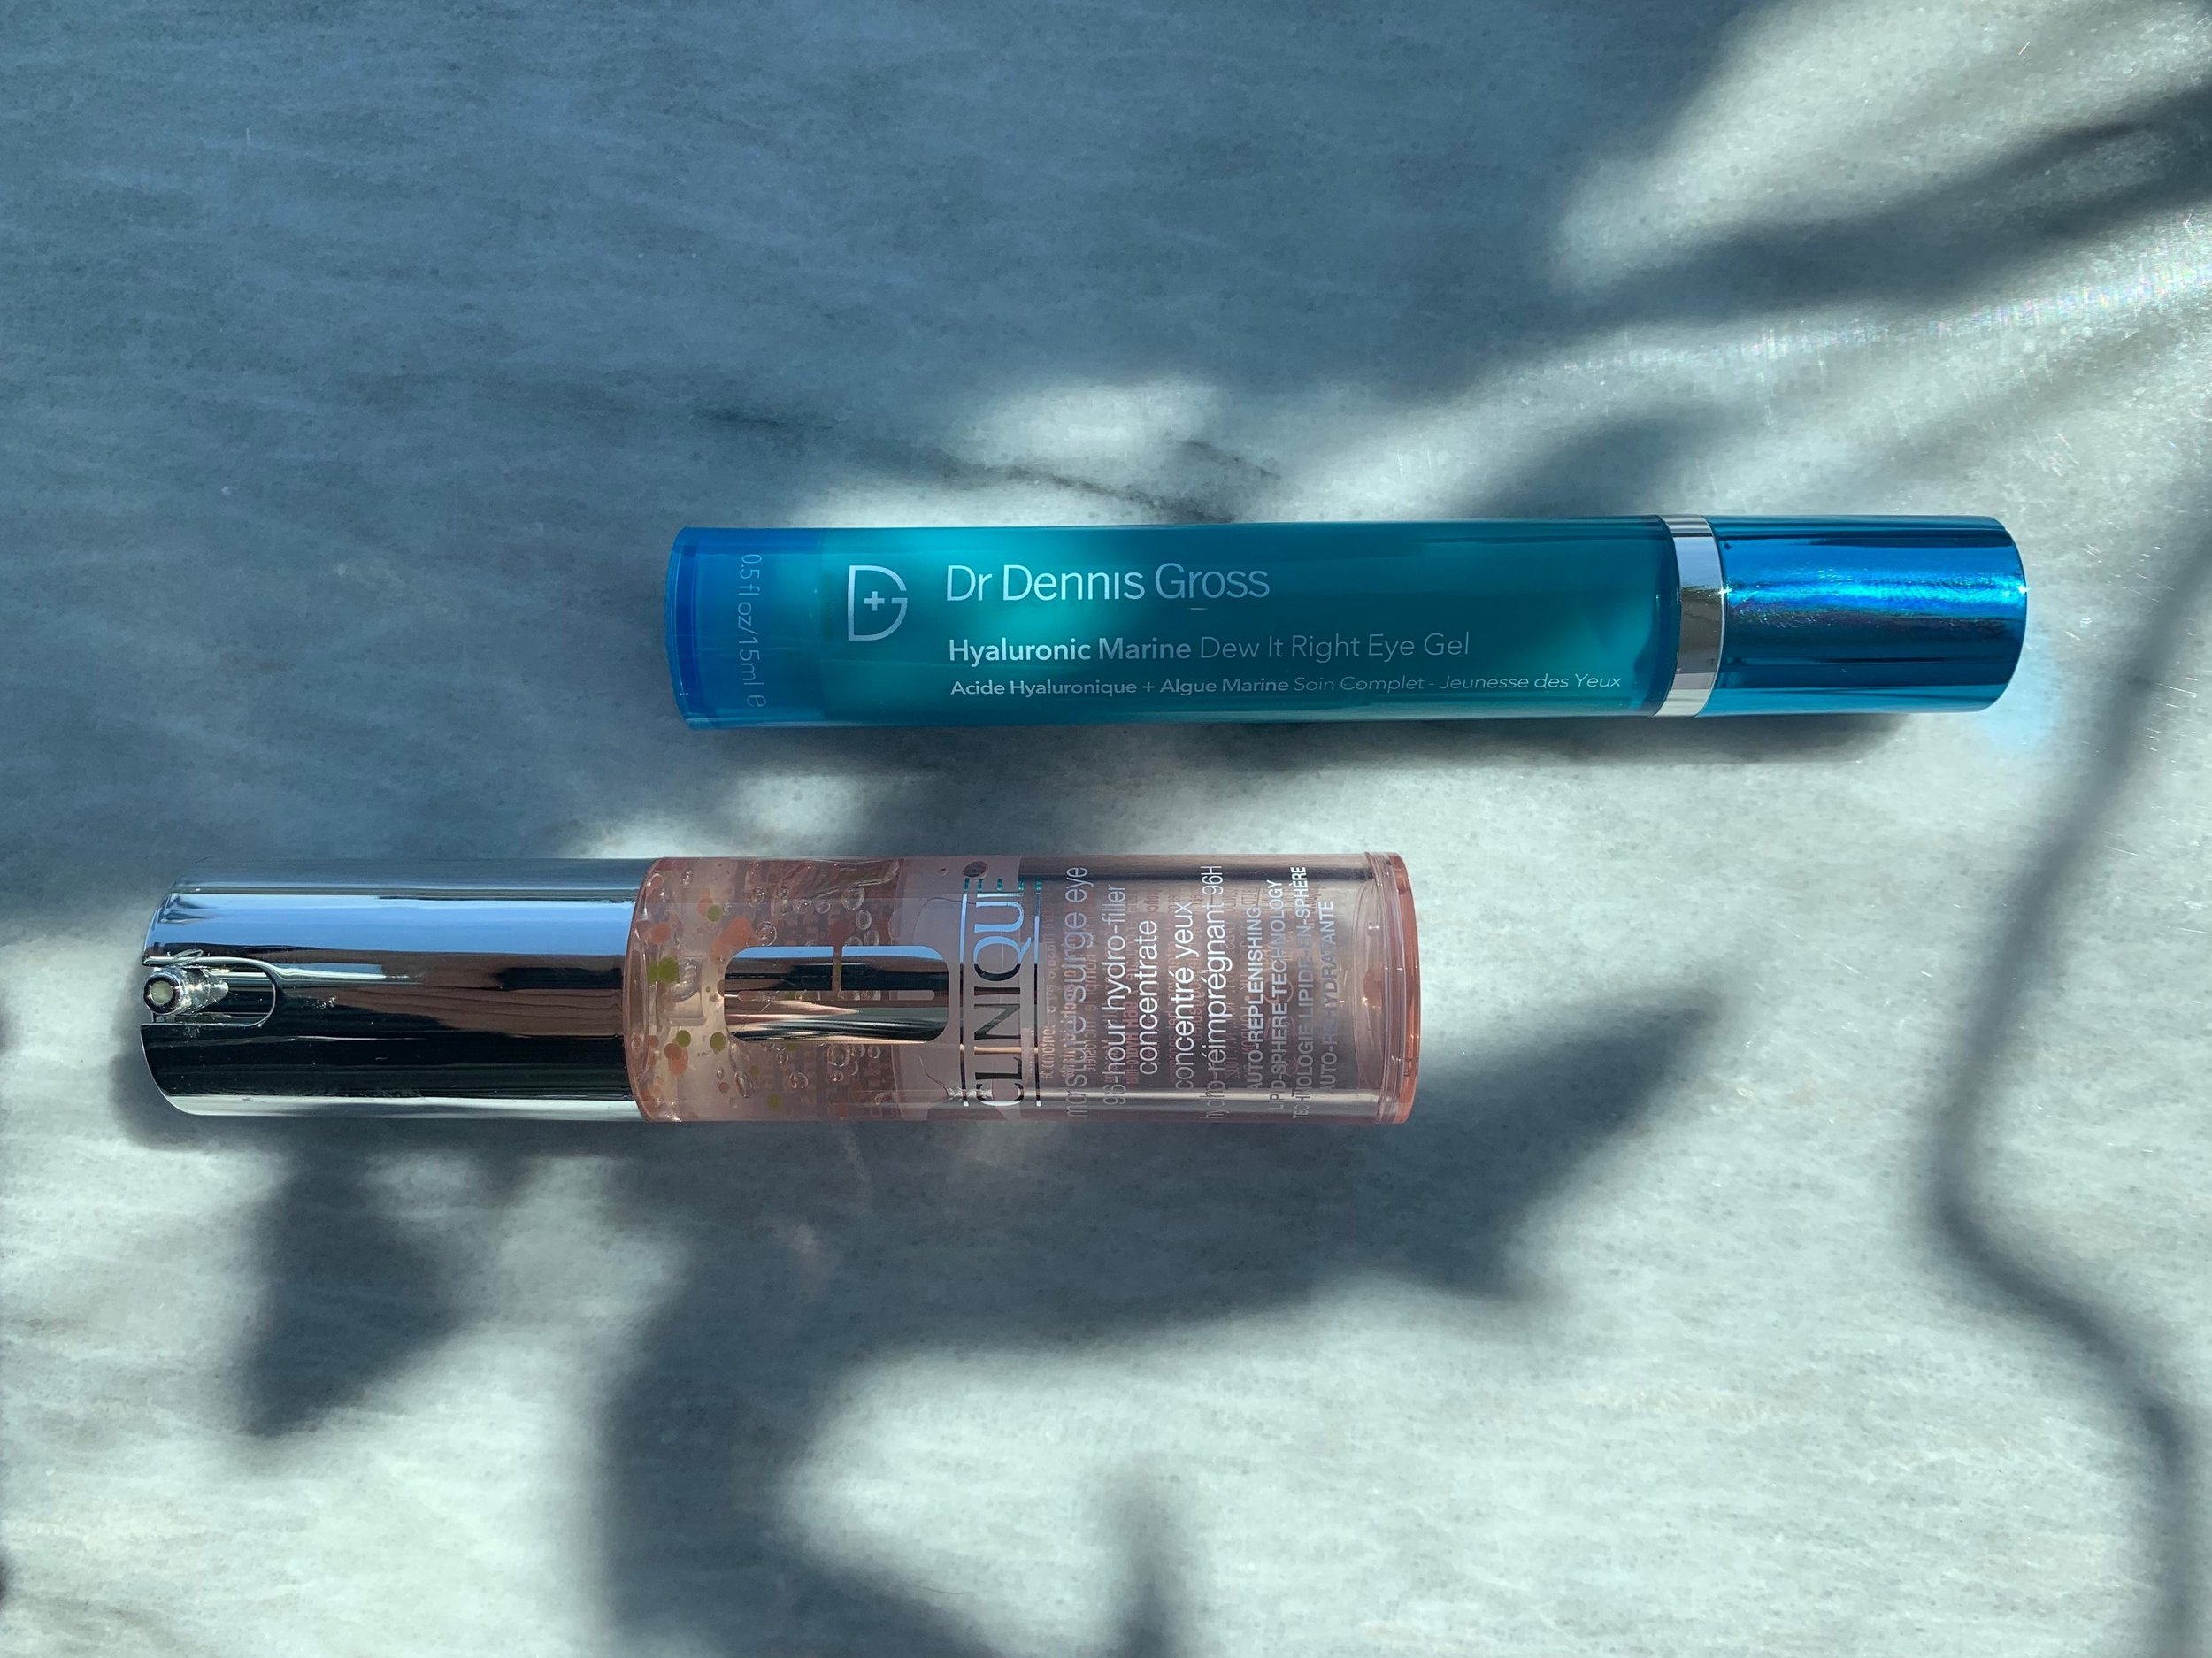 These two awesome summer textured eye creams get the Skincarma approval.